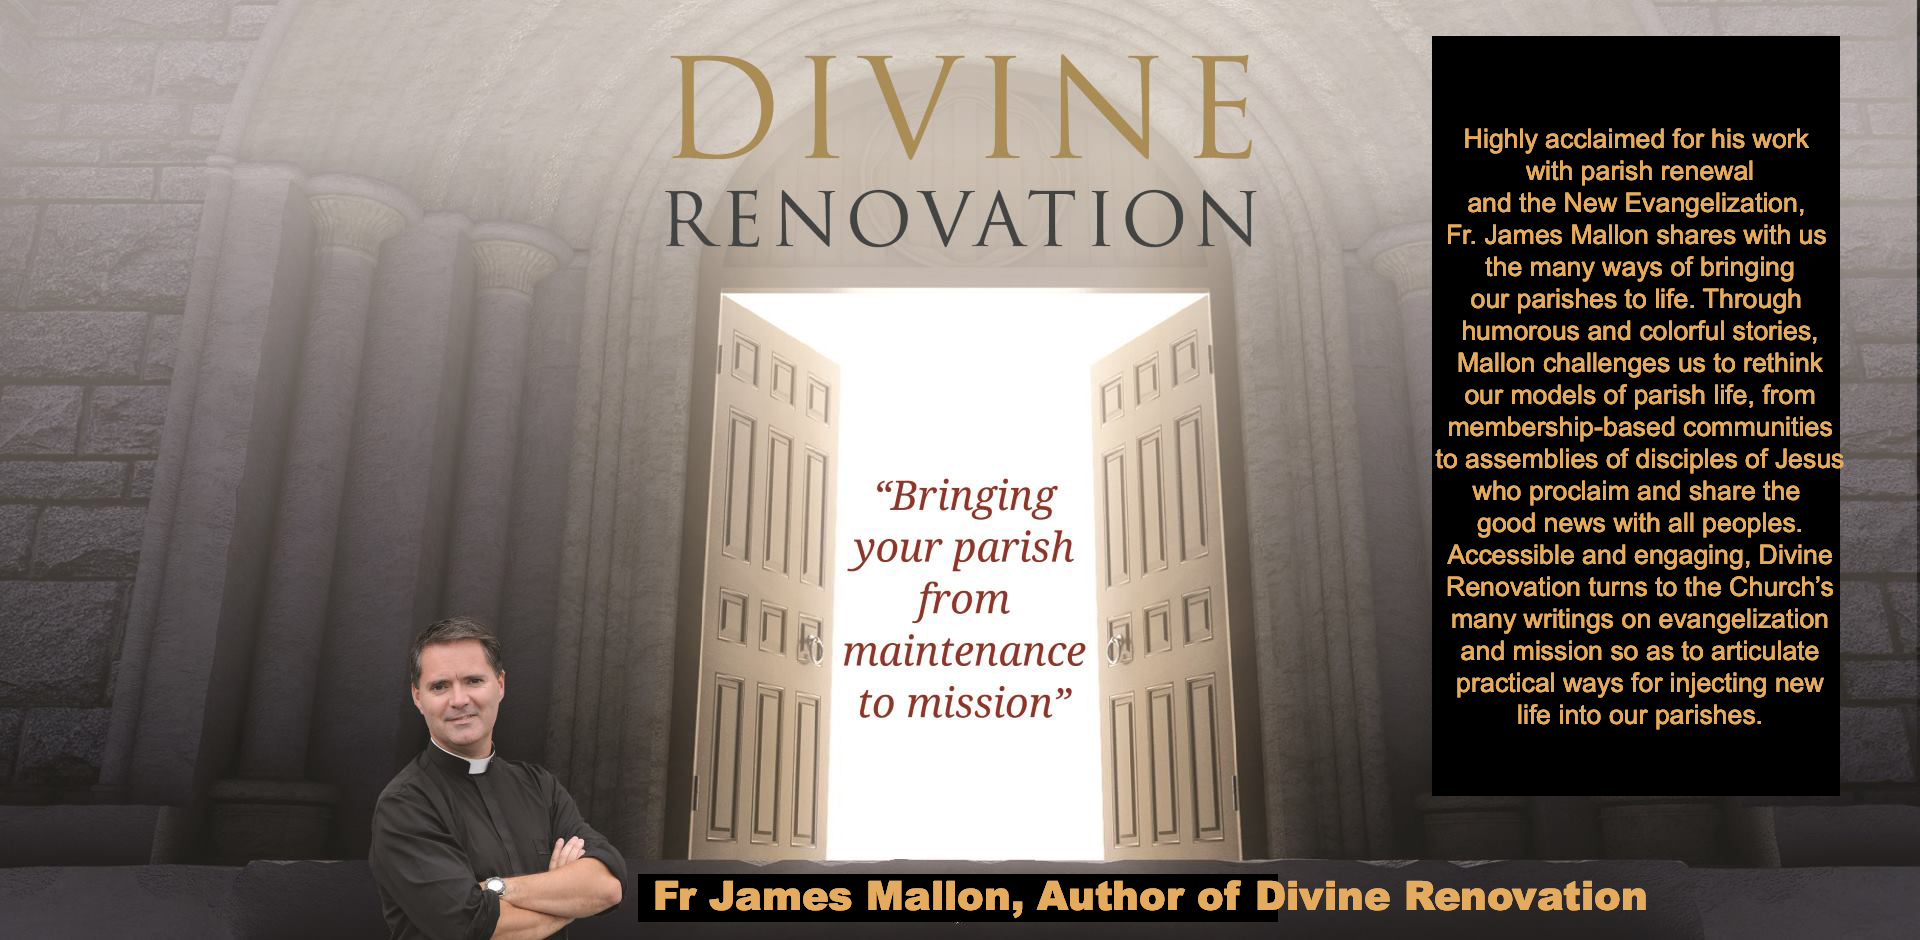 WATCH FATHER MALLON IN THIS FIVE PART INTERVIEW SERIES ON HIS EXPERIENCES AT ST BENEDICTS IN NOVA SCOTIA, THE BIRTHPLACE OF DIVINE RENOVATION. DIVINE RENOVATION HAS BEEN AN INSPIRATION FOR EPIPHANY.